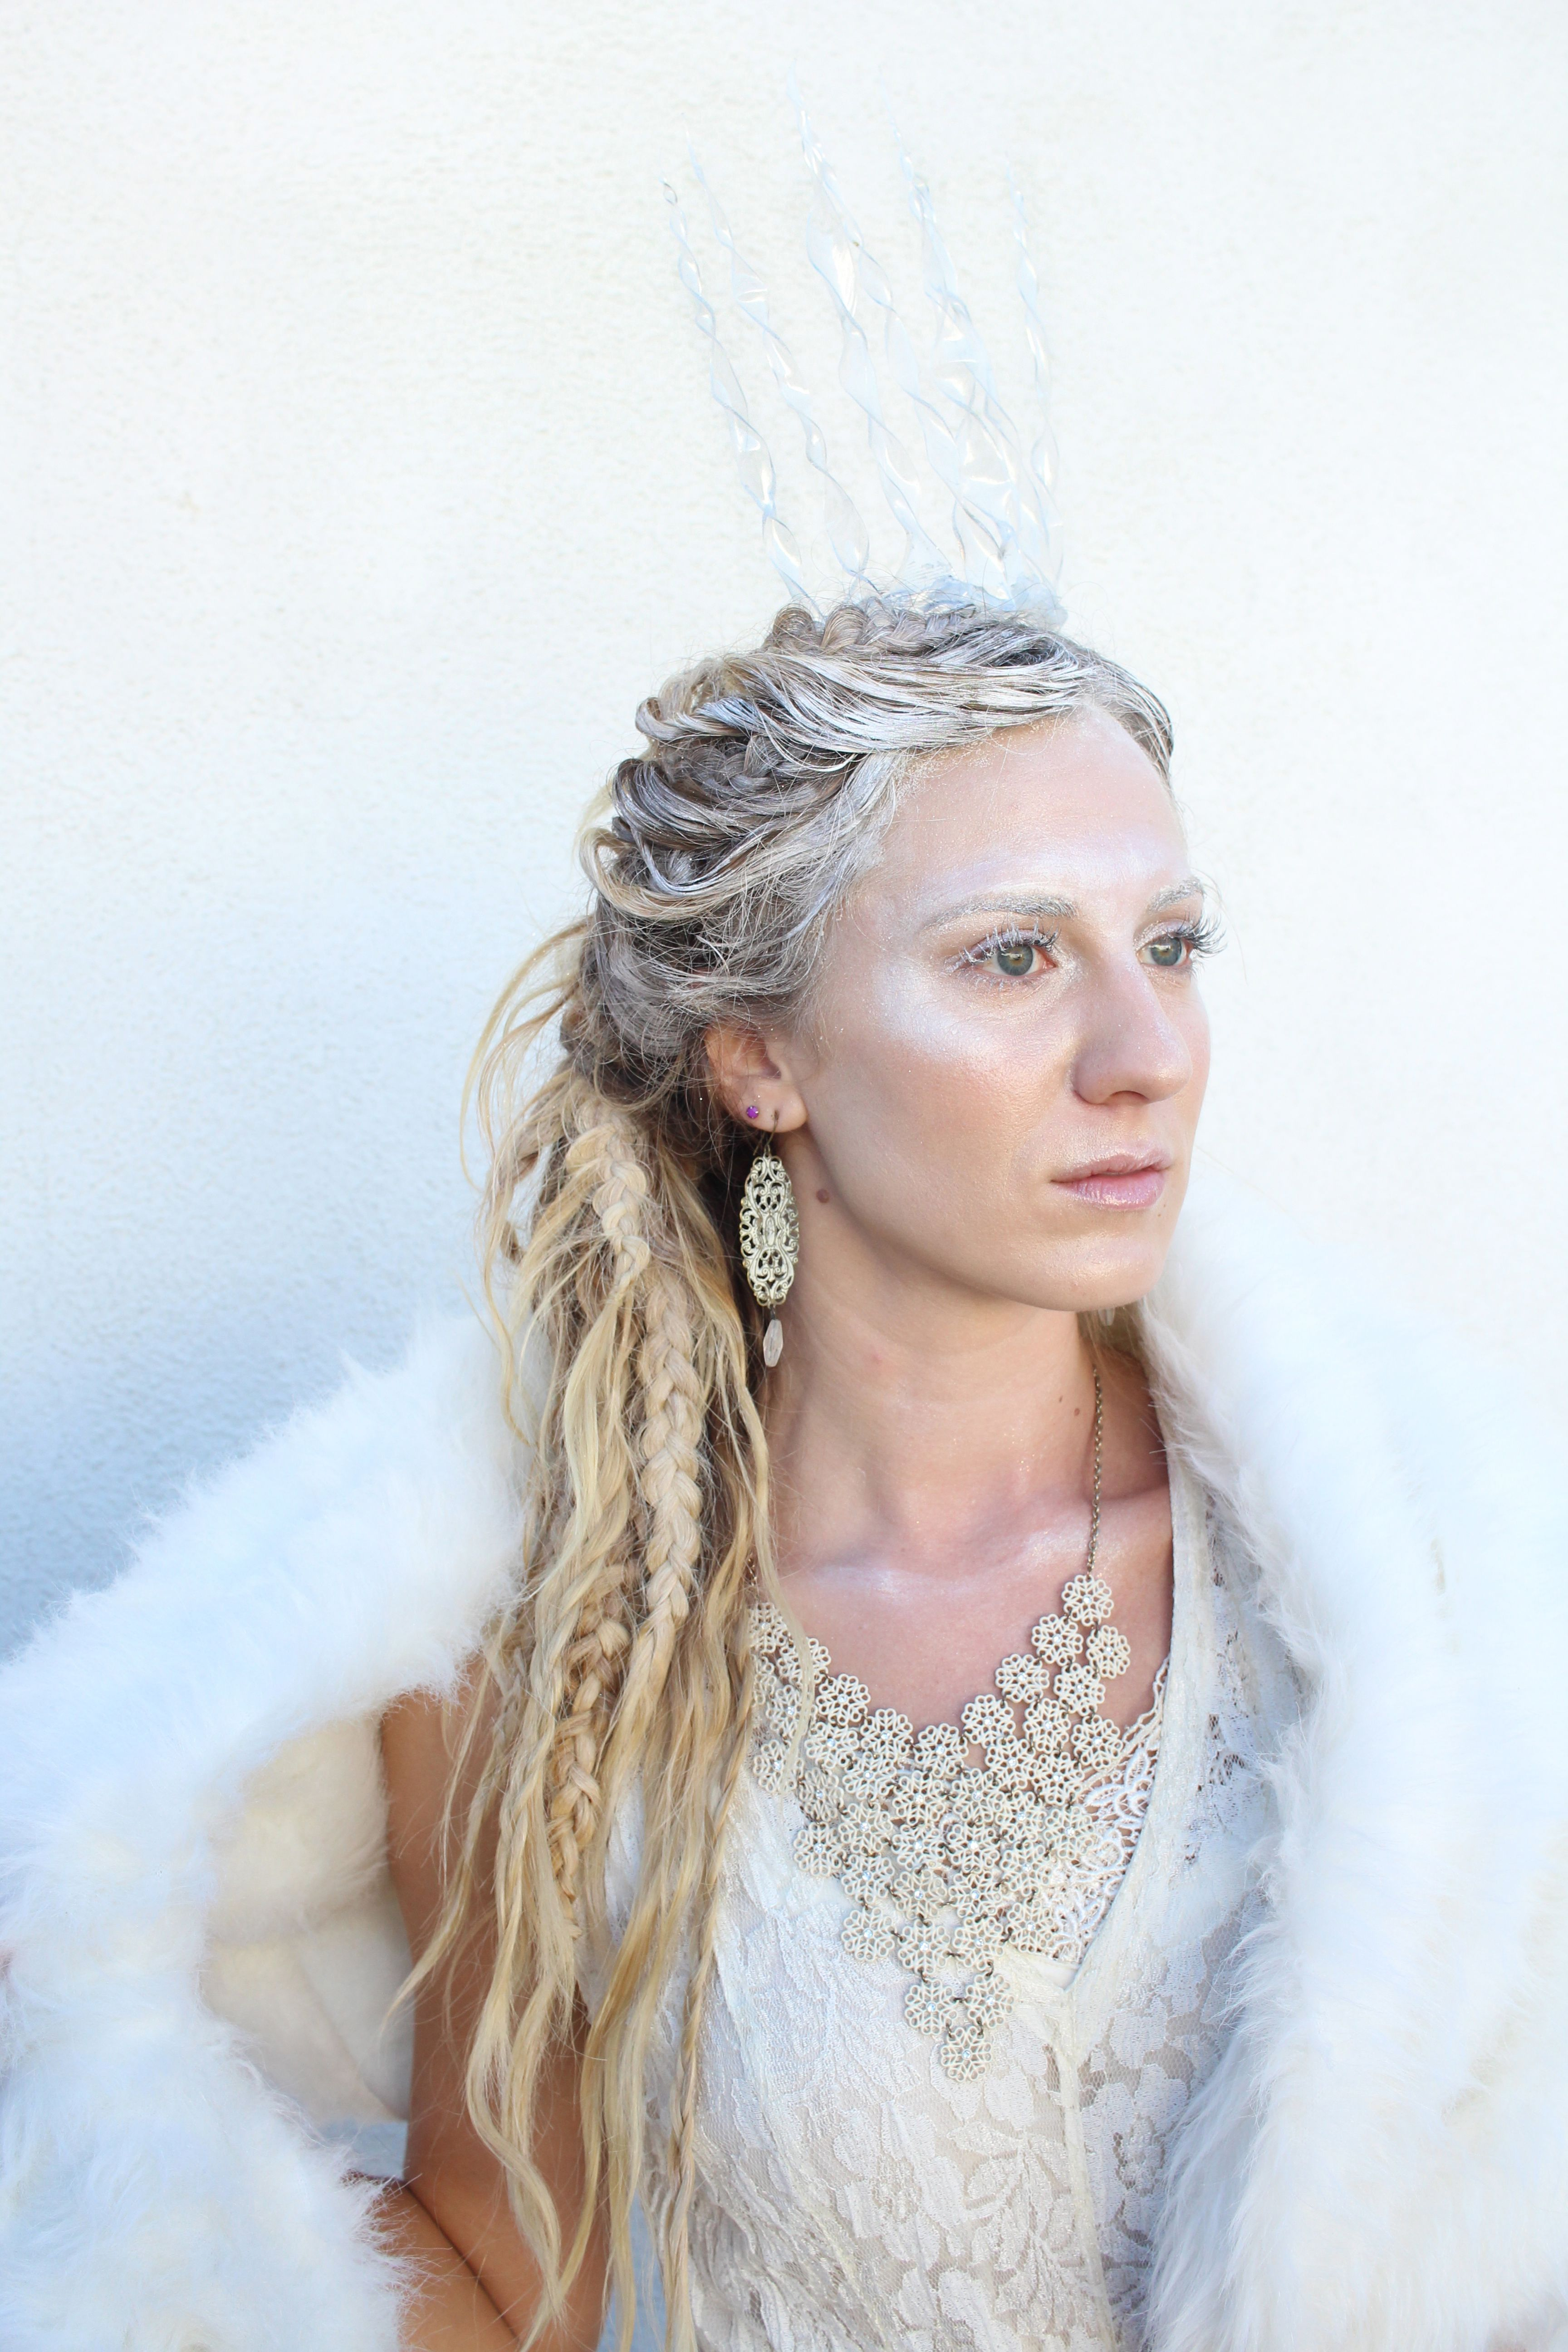 Snow Queen Halloween costume hair and make up by Tara at Meleesa ...